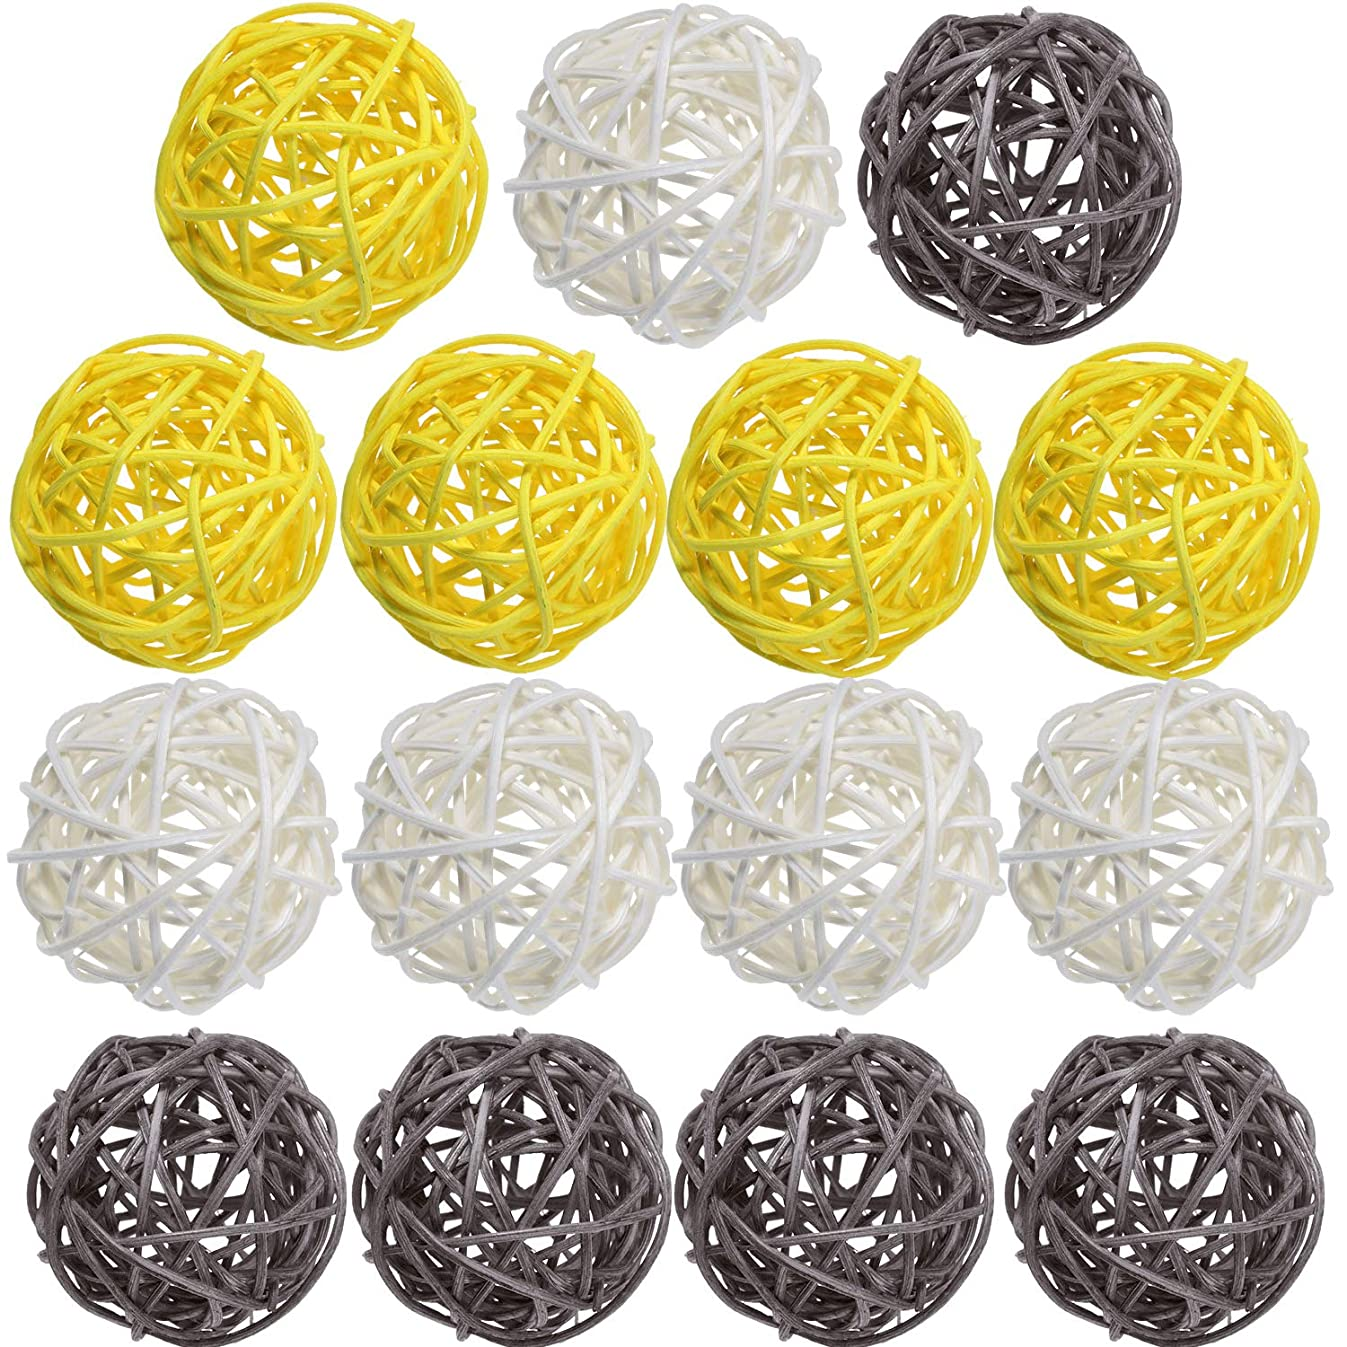 Yaomiao Wicker Rattan Balls Decorative Orbs Vase Fillers for Craft Project, Wedding Table Decoration, Themed Party, Baby Shower, Aromatherapy Accessories (Yellow Gray White, 2 Inch)